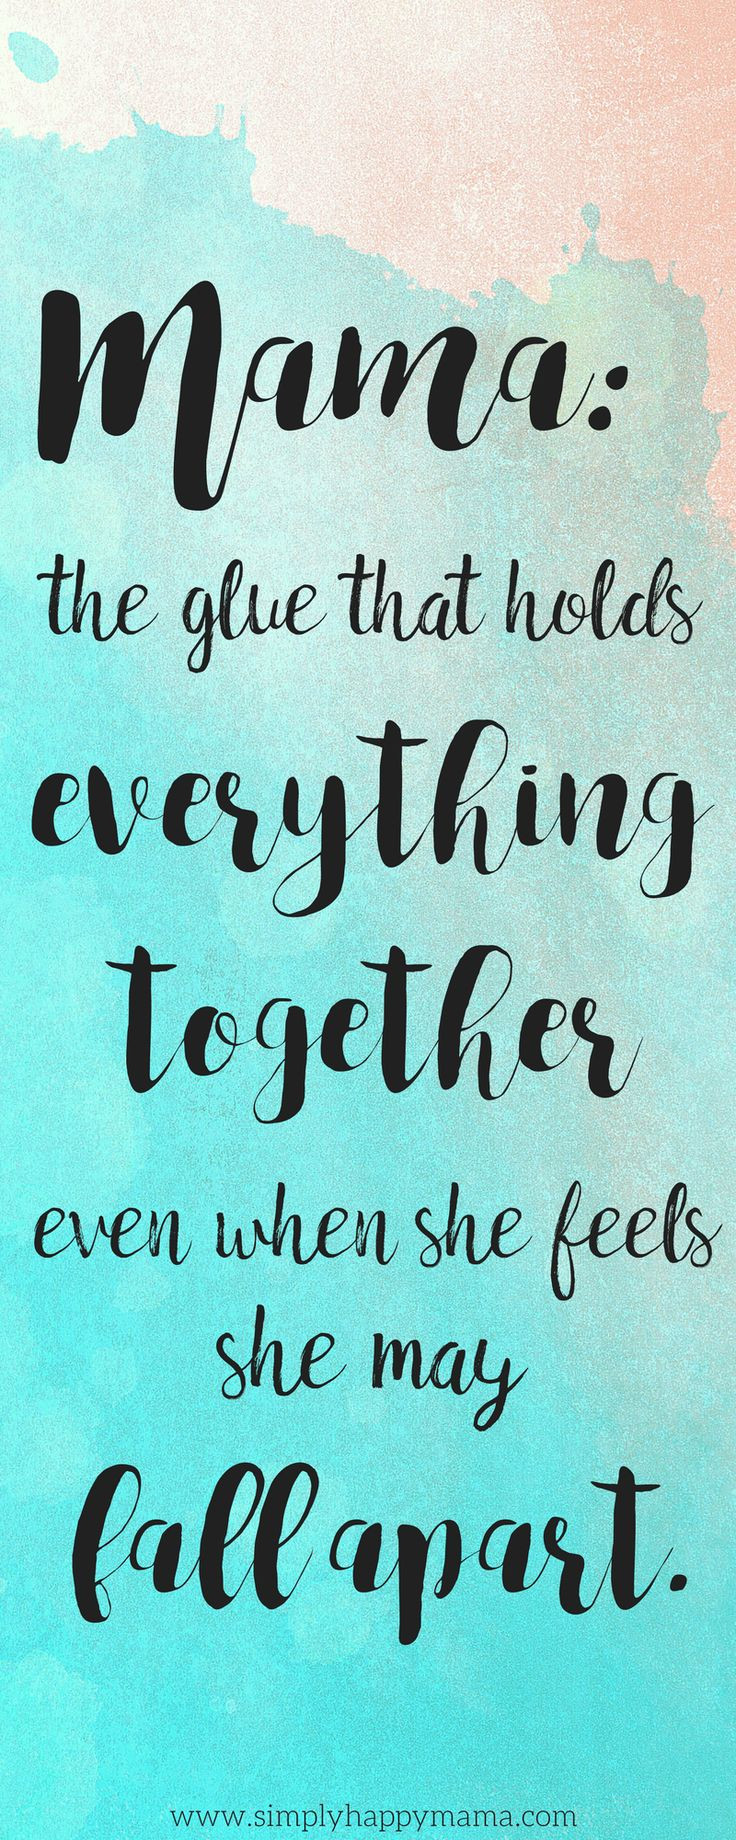 Positive Family Quotes  Best 25 Family sayings ideas on Pinterest